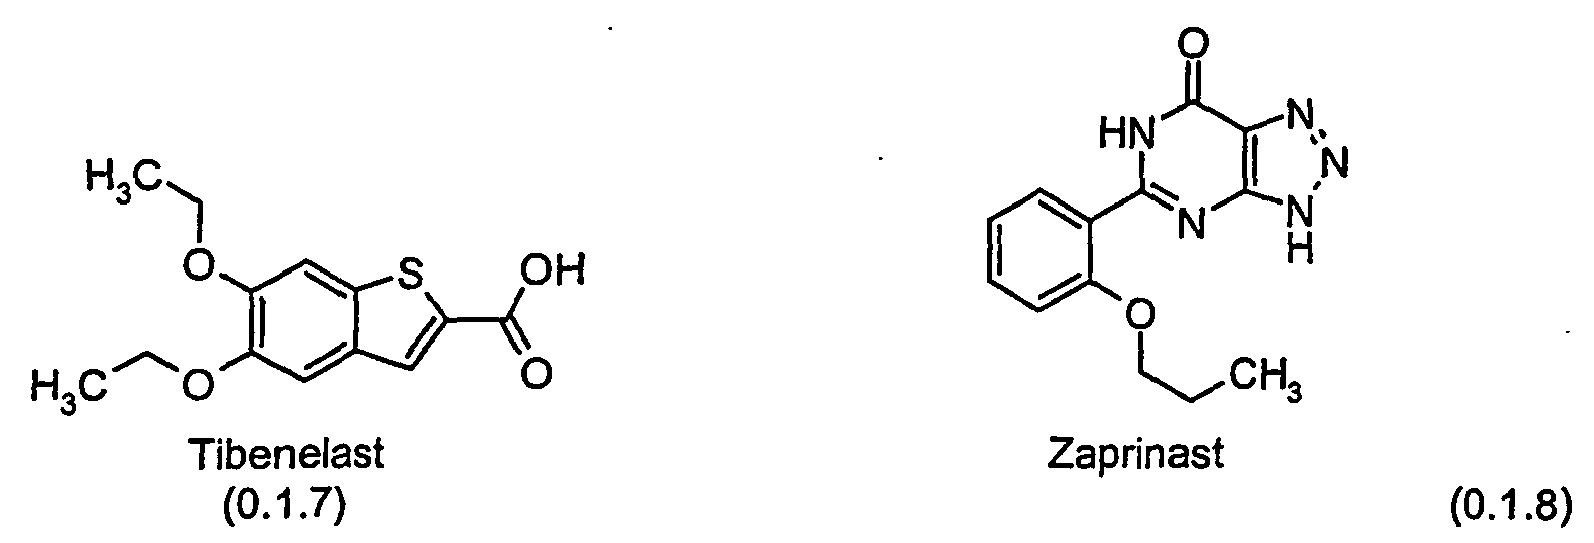 专利ep1397135b1 - combination of a pde4 inhibitor